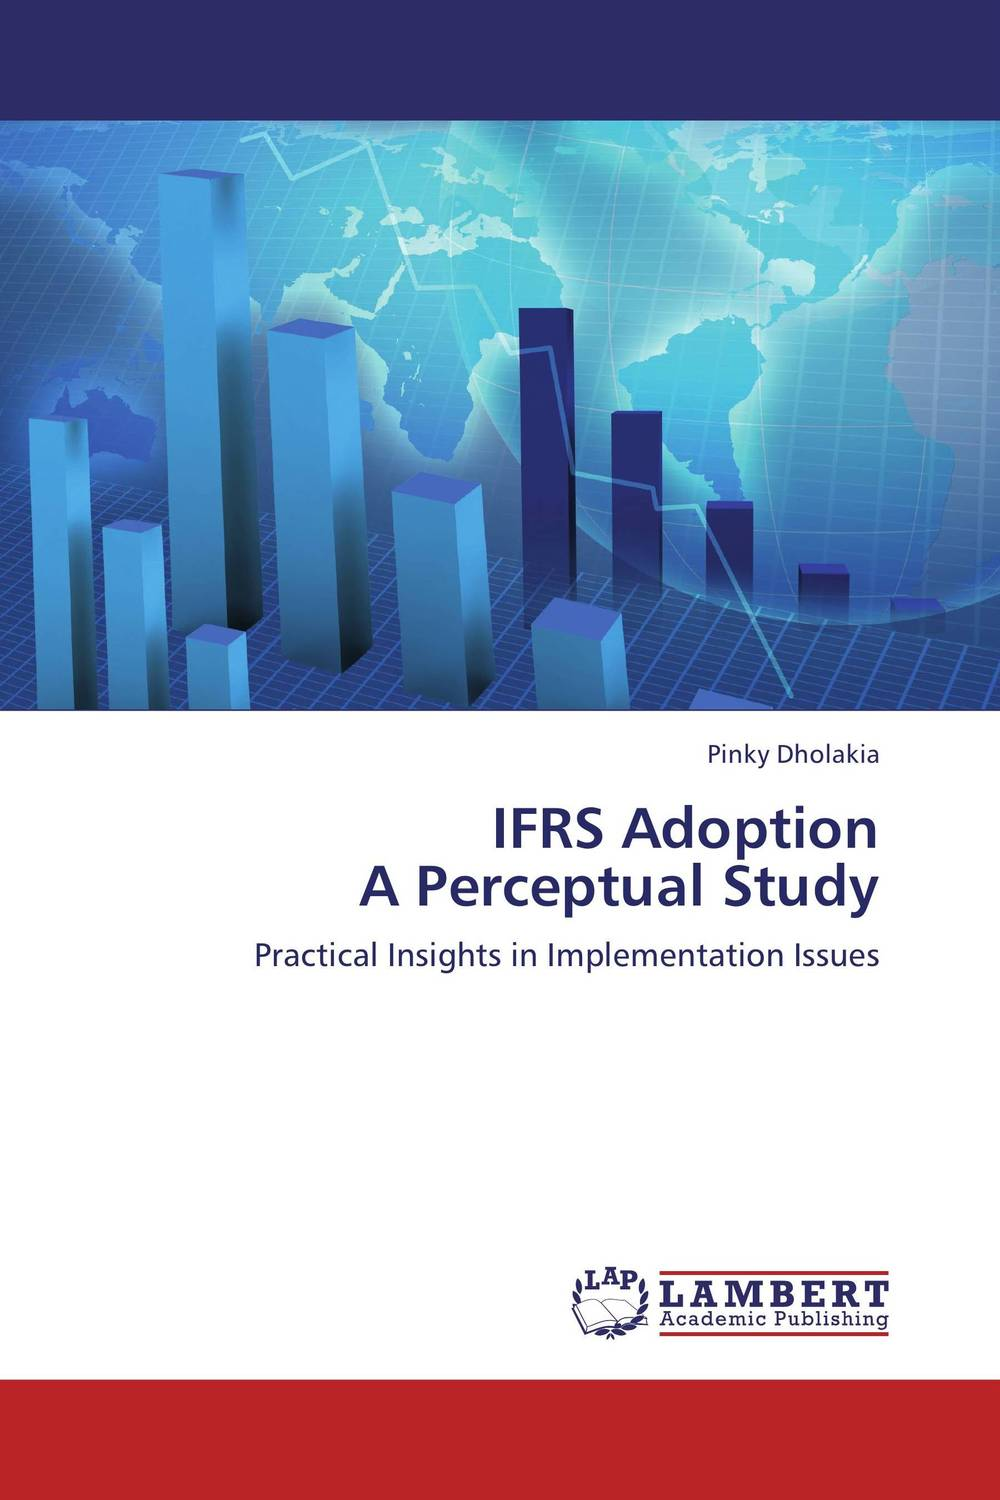 IFRS Adoption  A Perceptual Study icaa the institute of chartered accountants in australia financial reporting handbook 2010